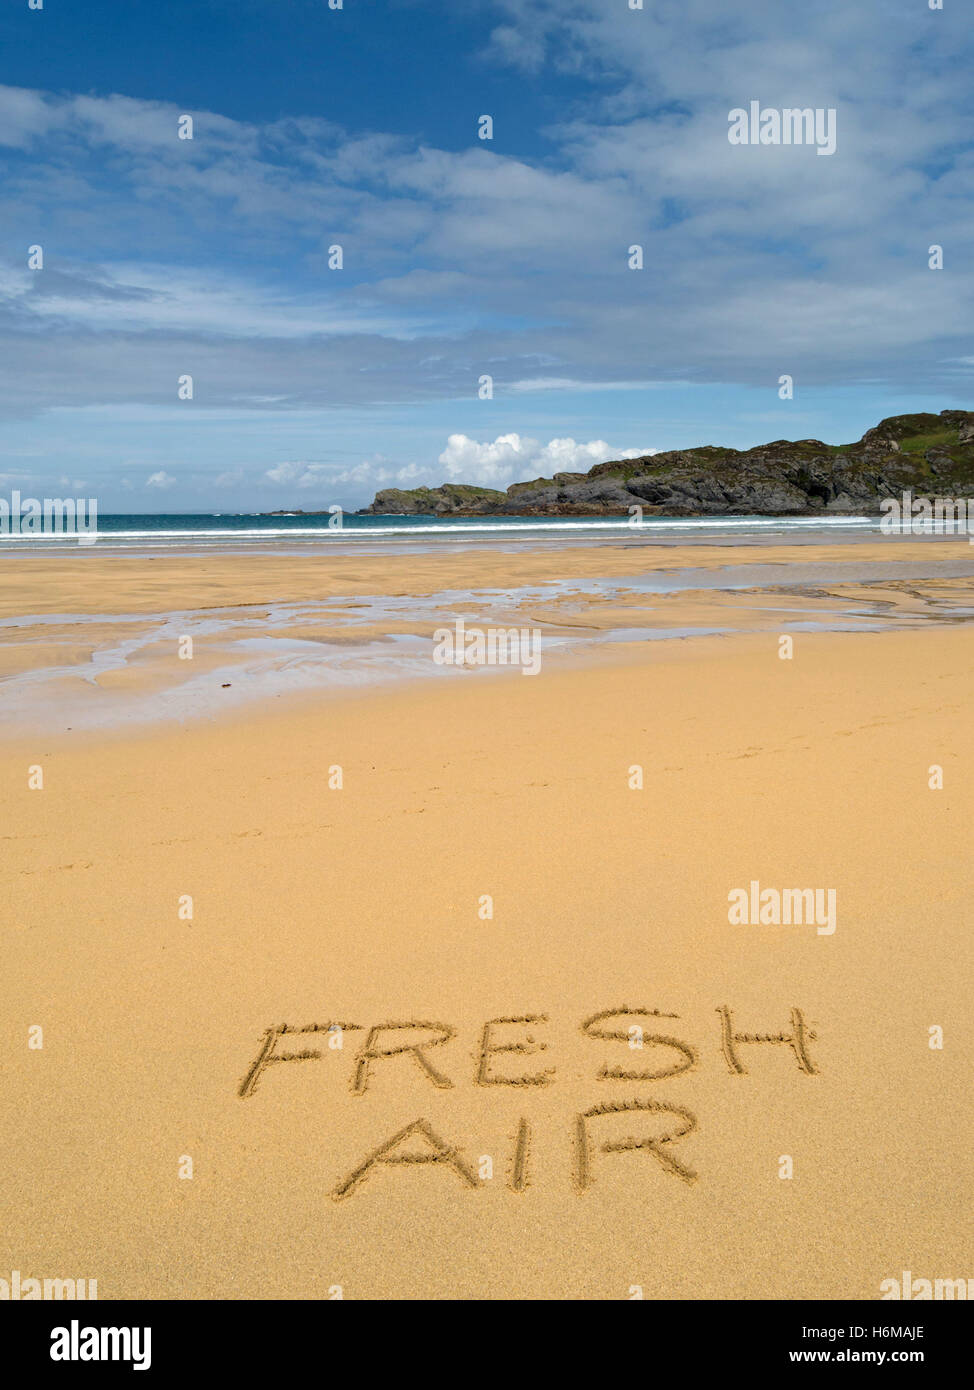 The words 'Fresh Air' written in golden yellow sand of deserted, remote remote Scottish beach. - Stock Image